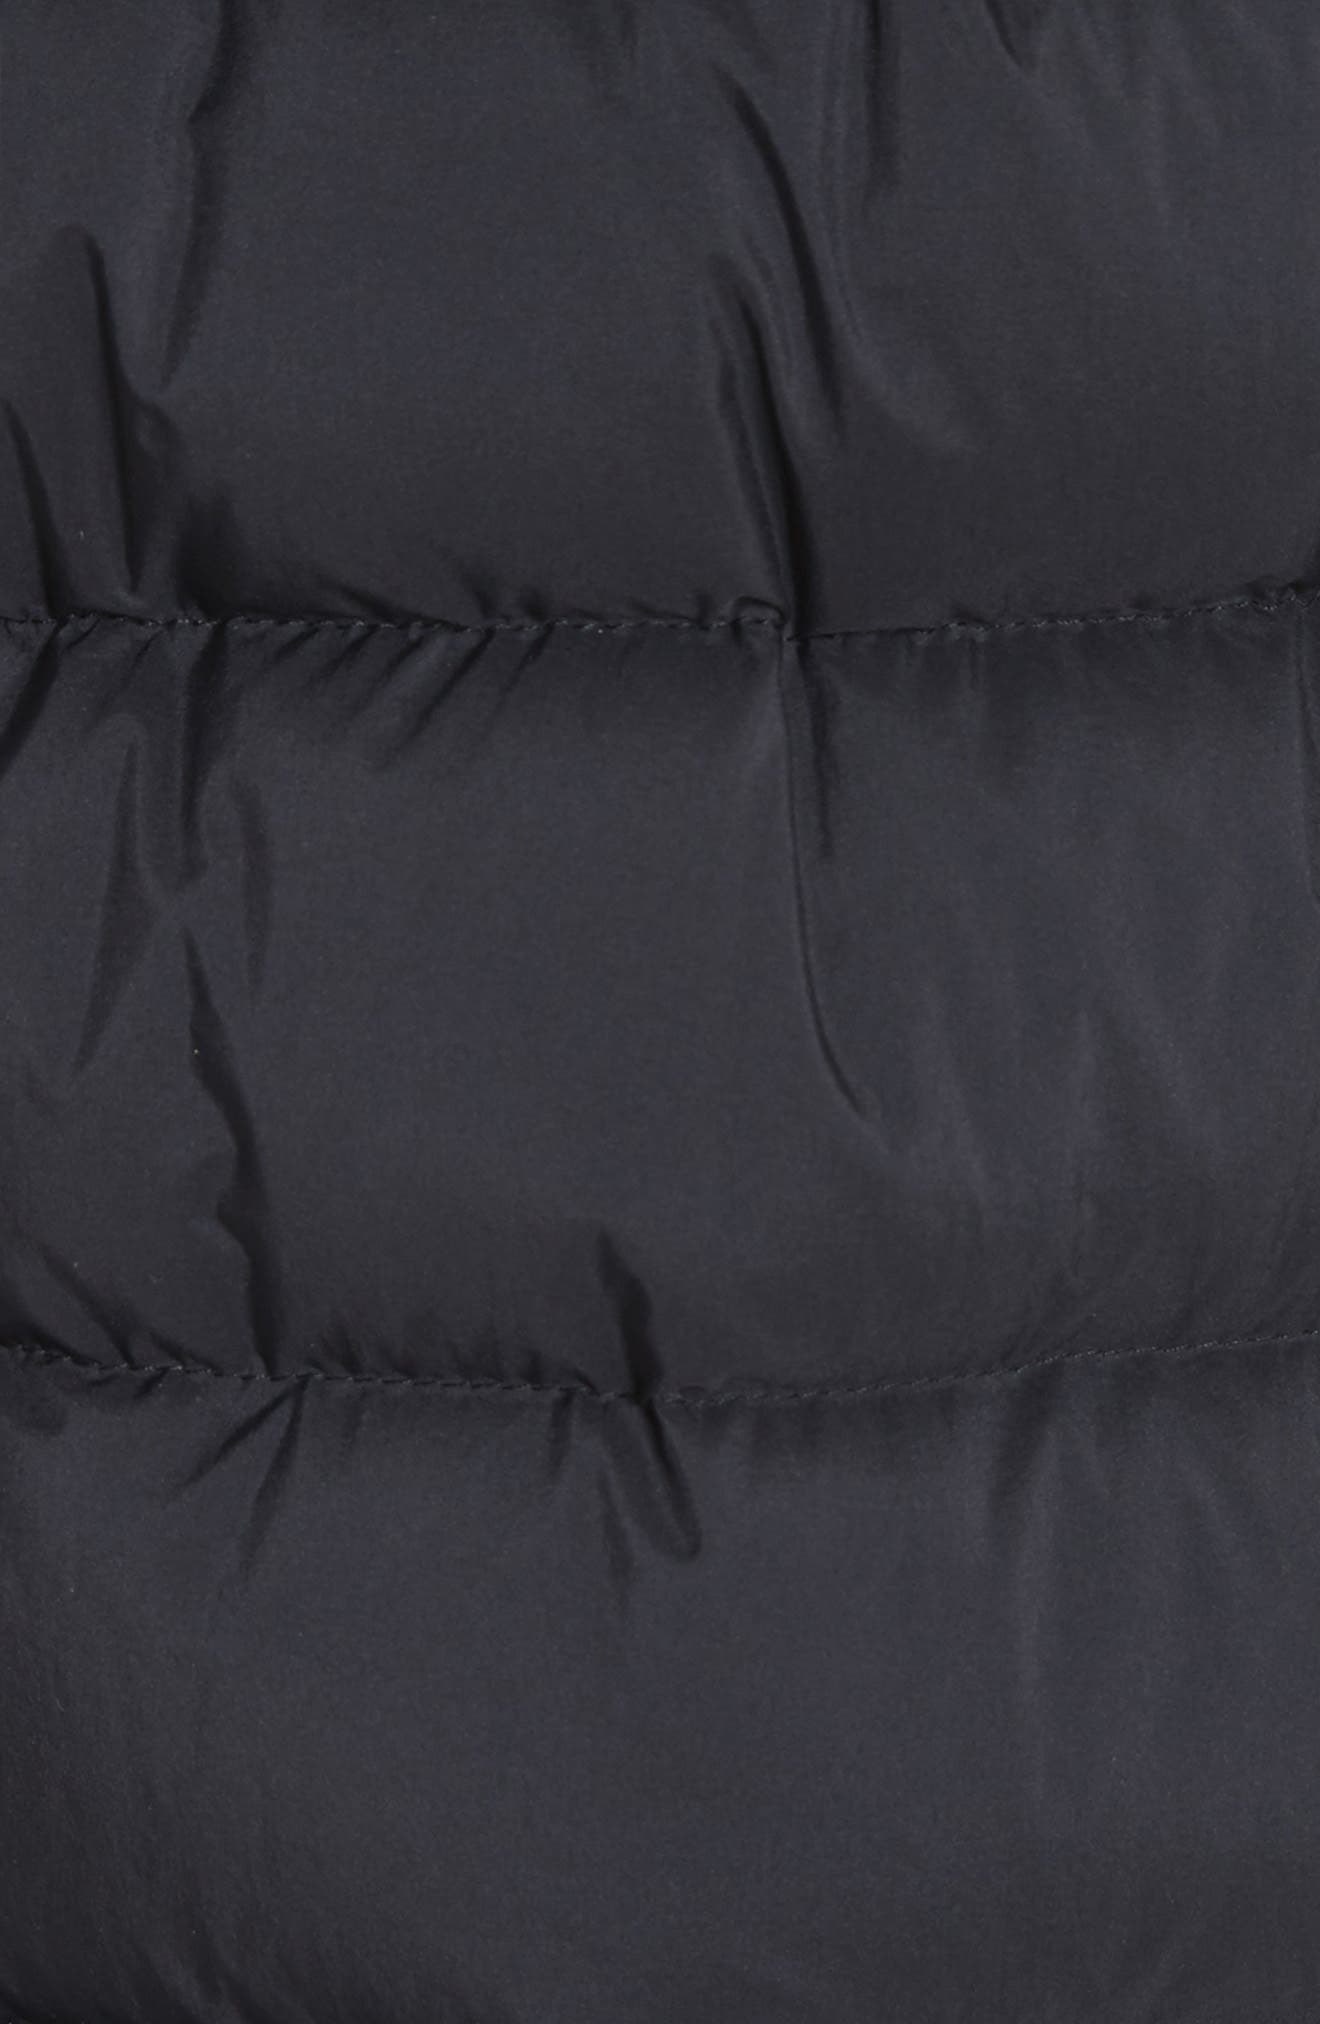 MONCLER, Goeland Quilted Down Jacket, Alternate thumbnail 7, color, 001